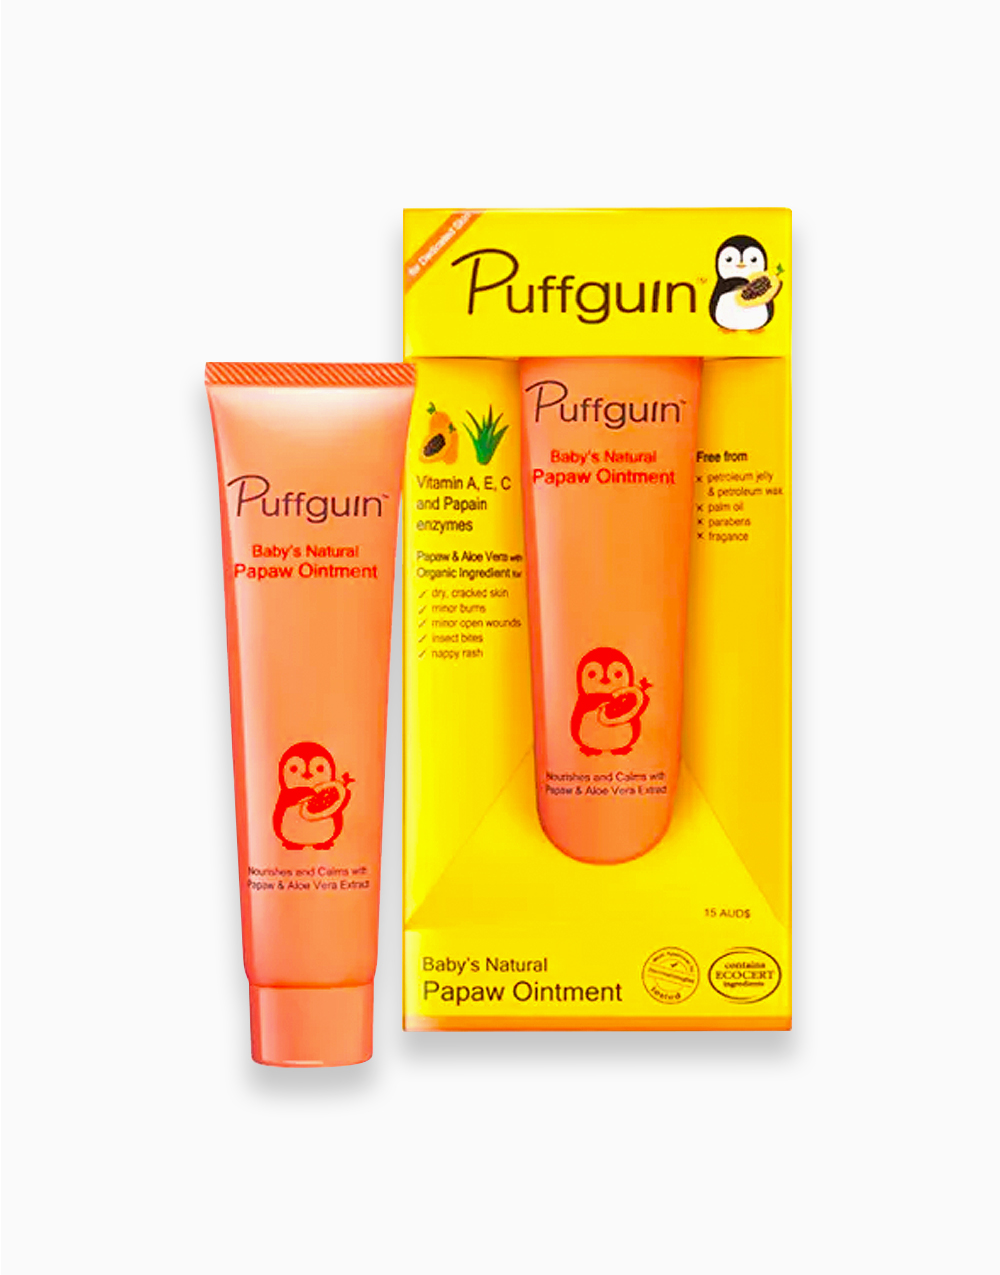 Puffguin Papaw Ointment (30g) by Puffguin